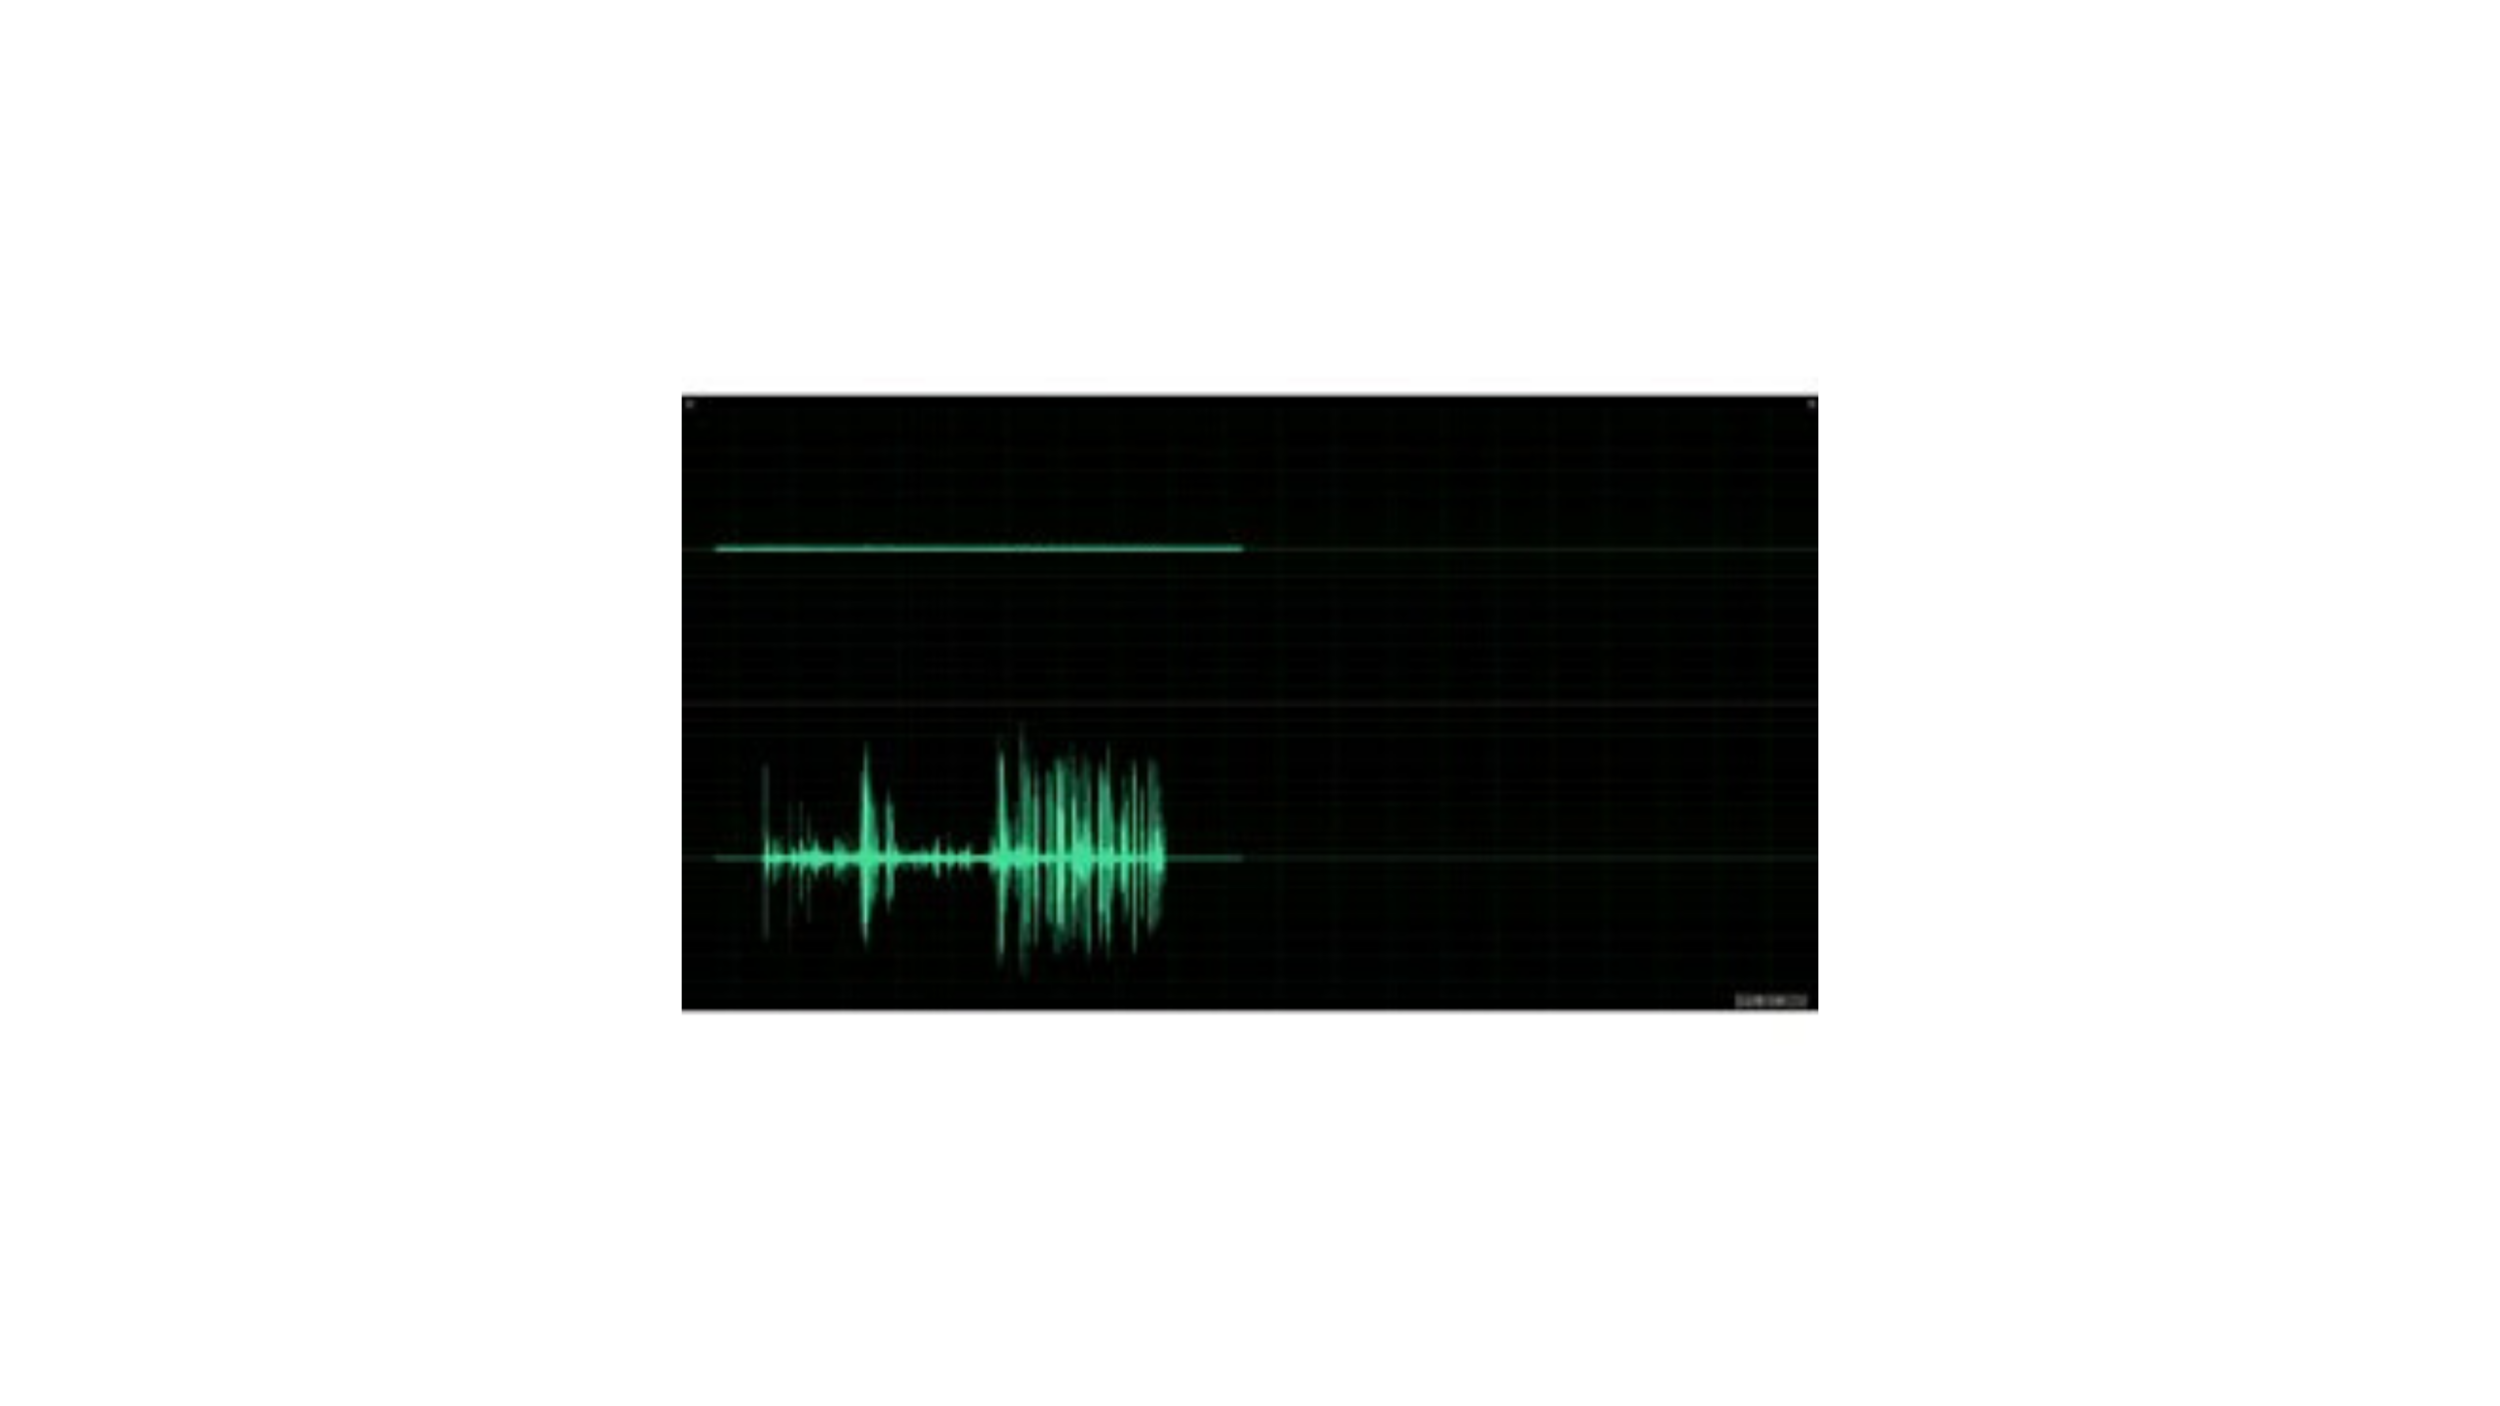 Raw - Raw service means you will receive the transferred files without any editing. If the audio is poorly recorded you may need to make volume and noise reduction adjustments on your own.